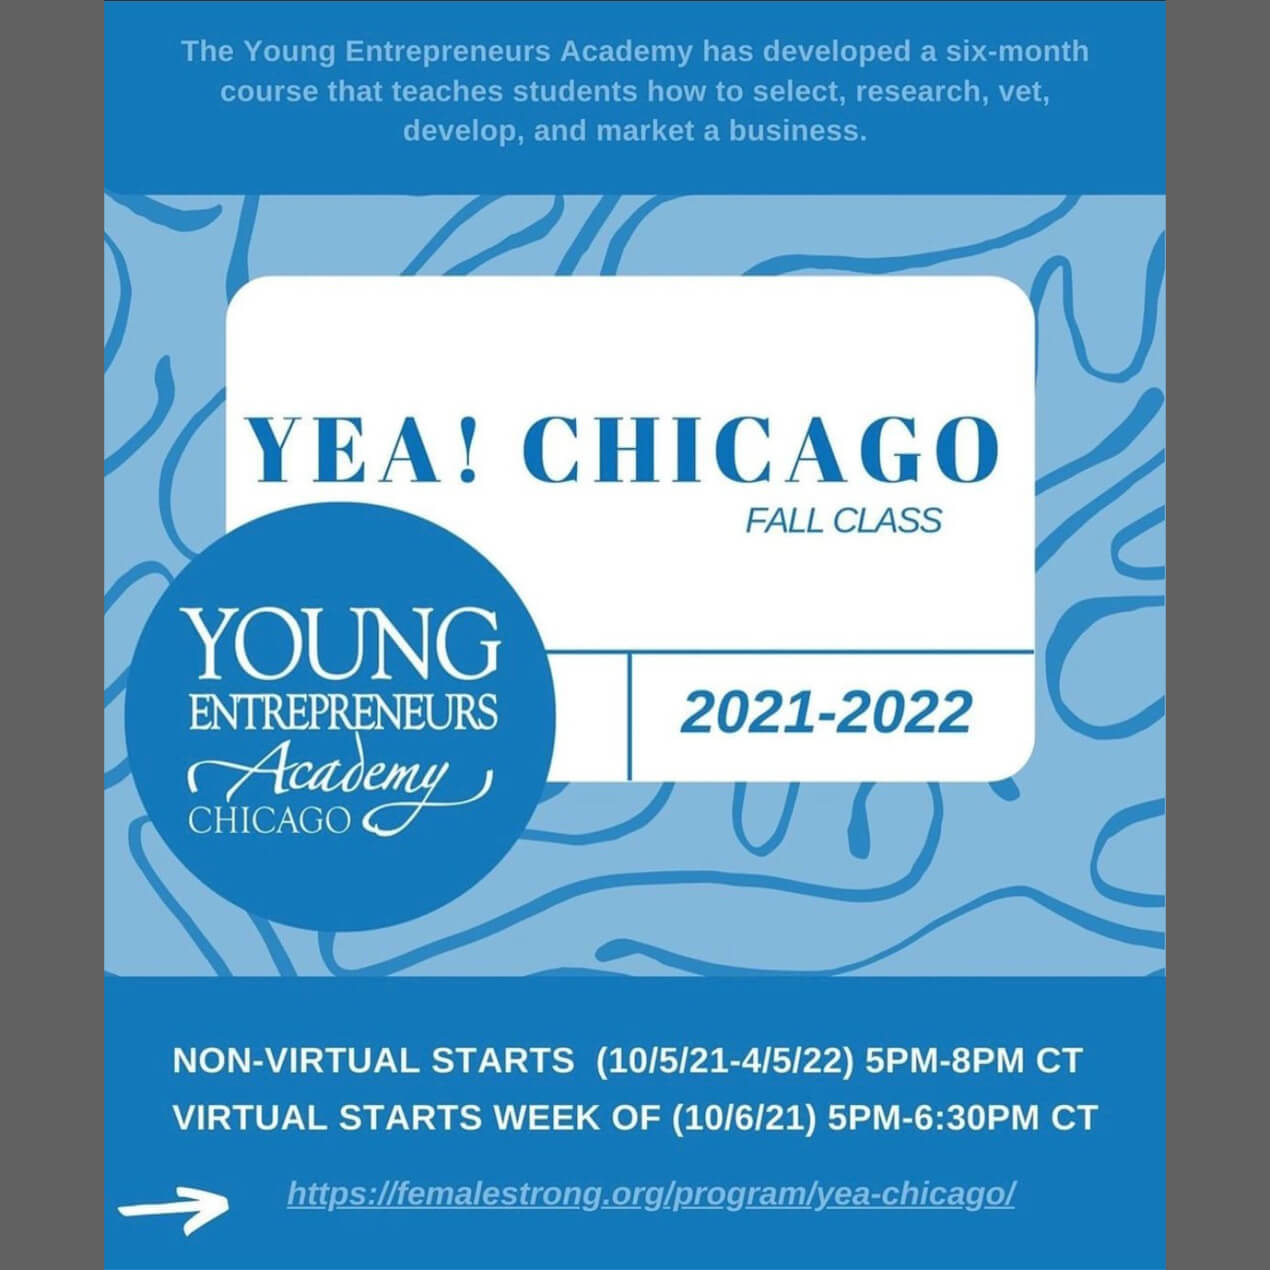 Michele Katz teaches IP to YEA! Chicago 7th year in a row